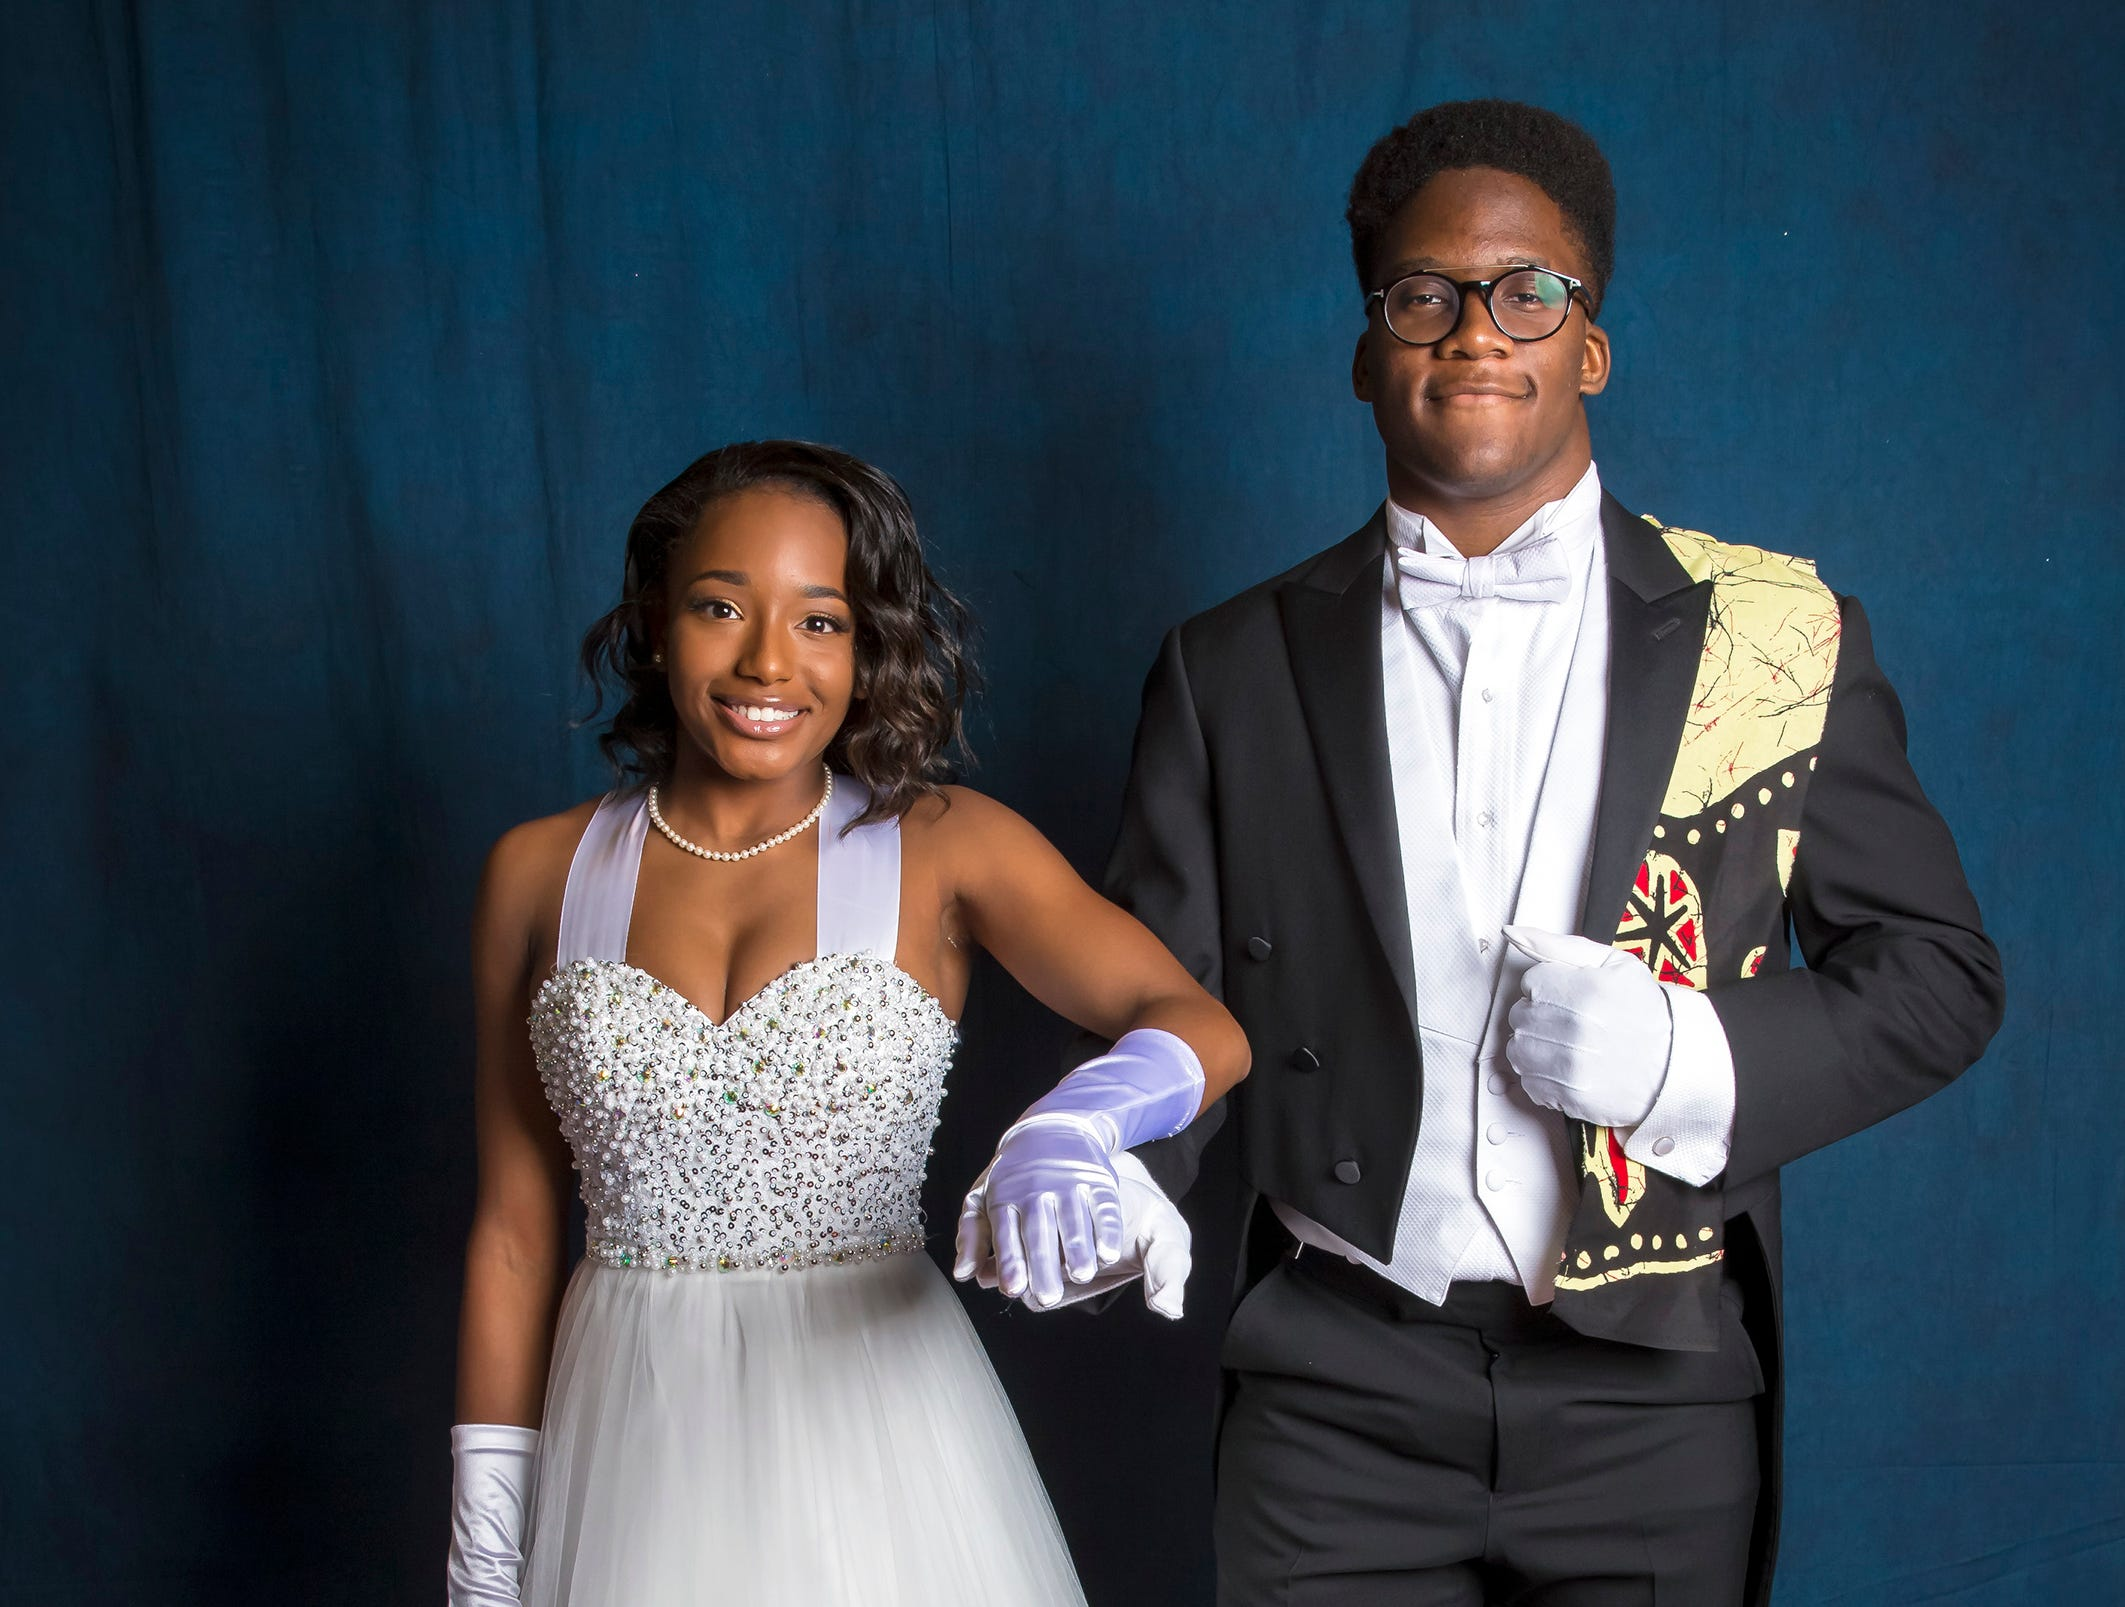 Kennedy Spicer and Kanayo Offodile at the Murfreesboro Alumni Chapter of Kappa Alpha Psi Fraternity Beautillion held at Embassy Suites.